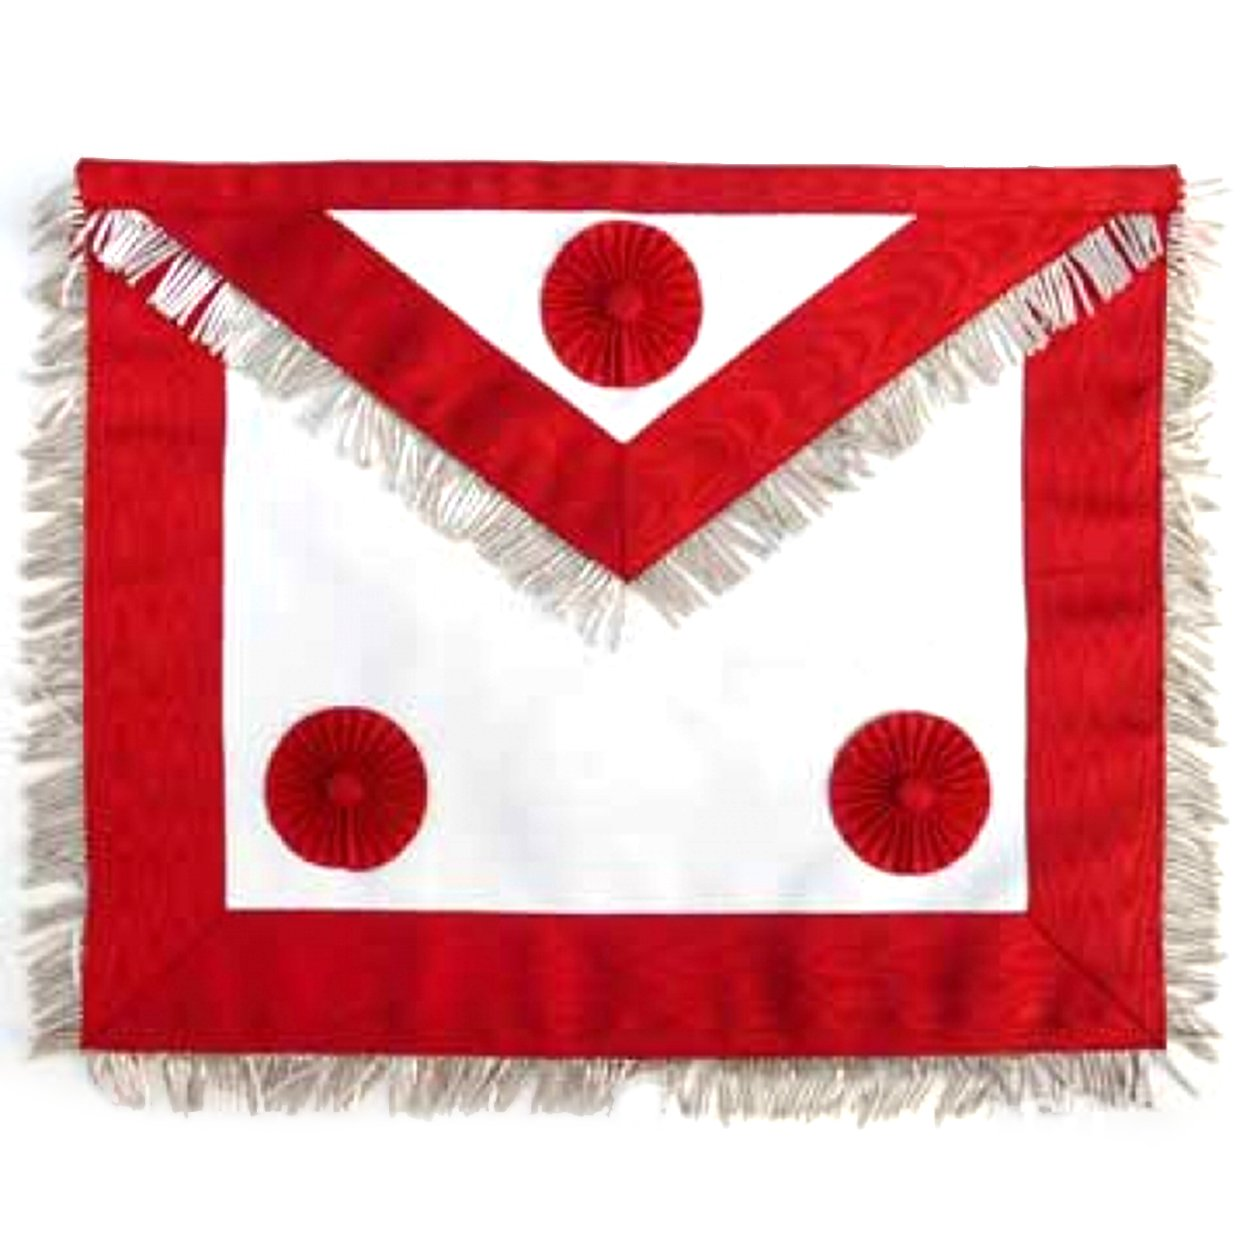 Masonic Scottish Rite AASR Honor Master Leather Apron - Bricks Masons